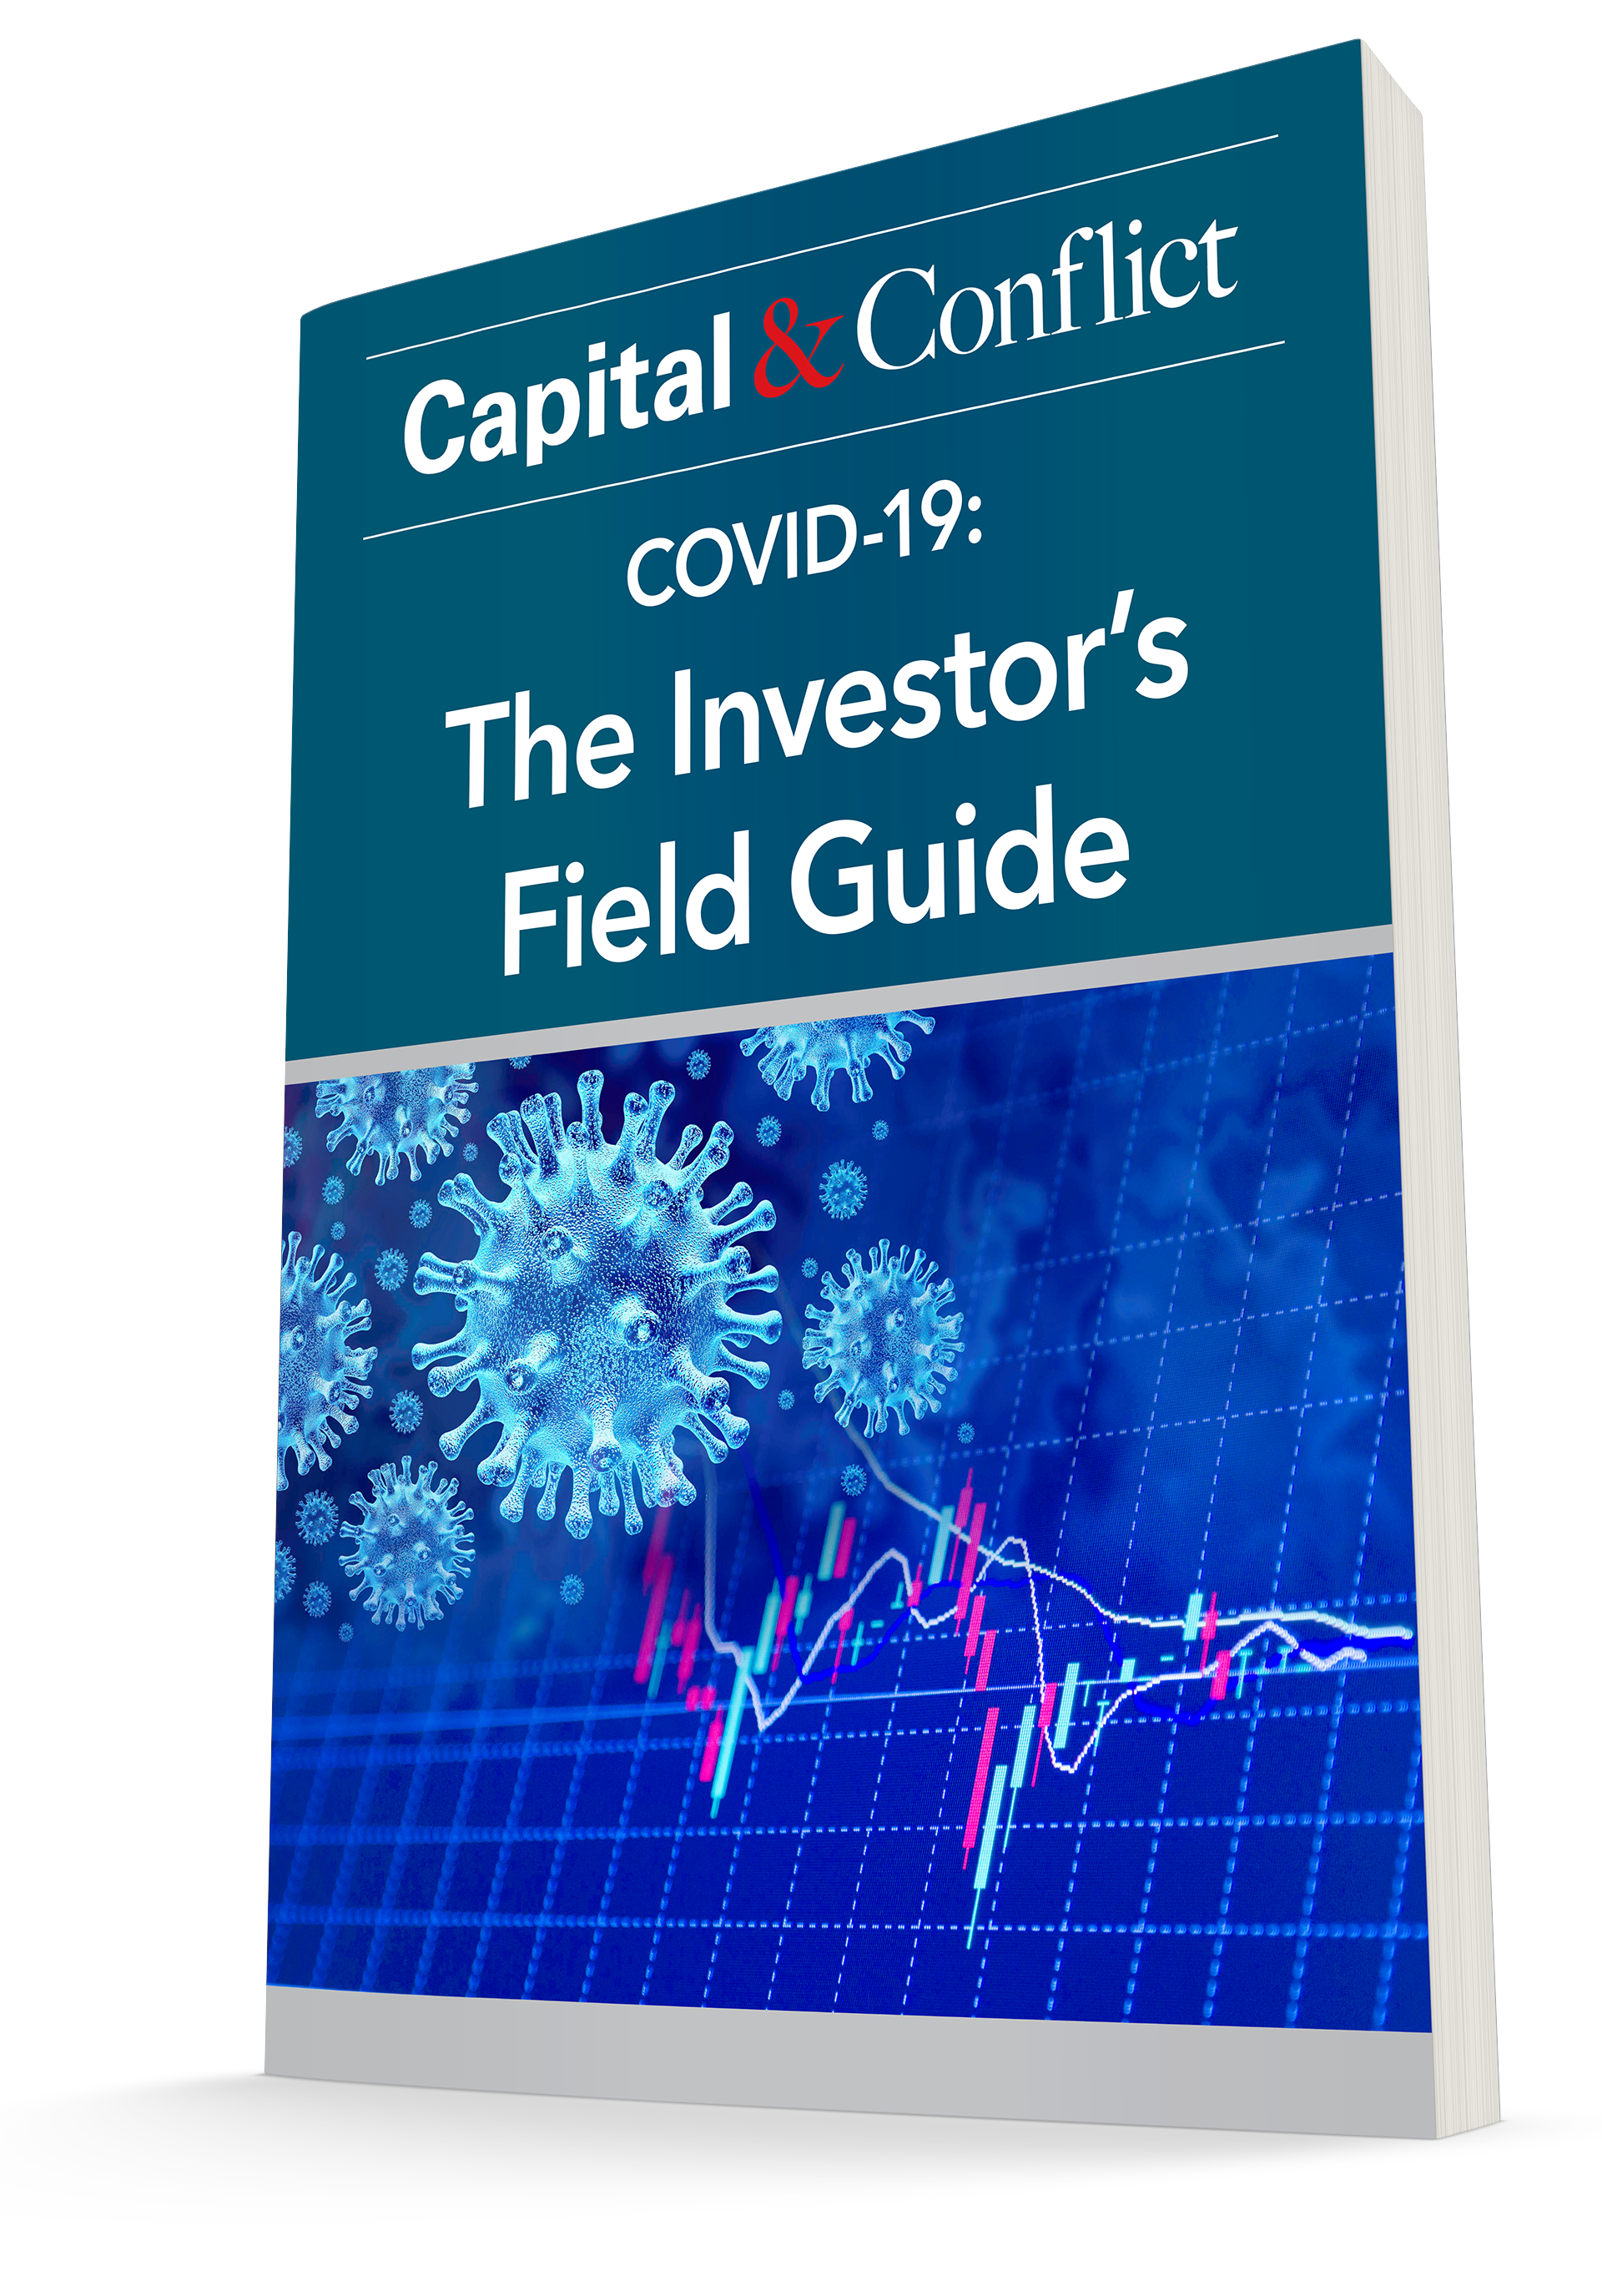 The Investor's Field Guide